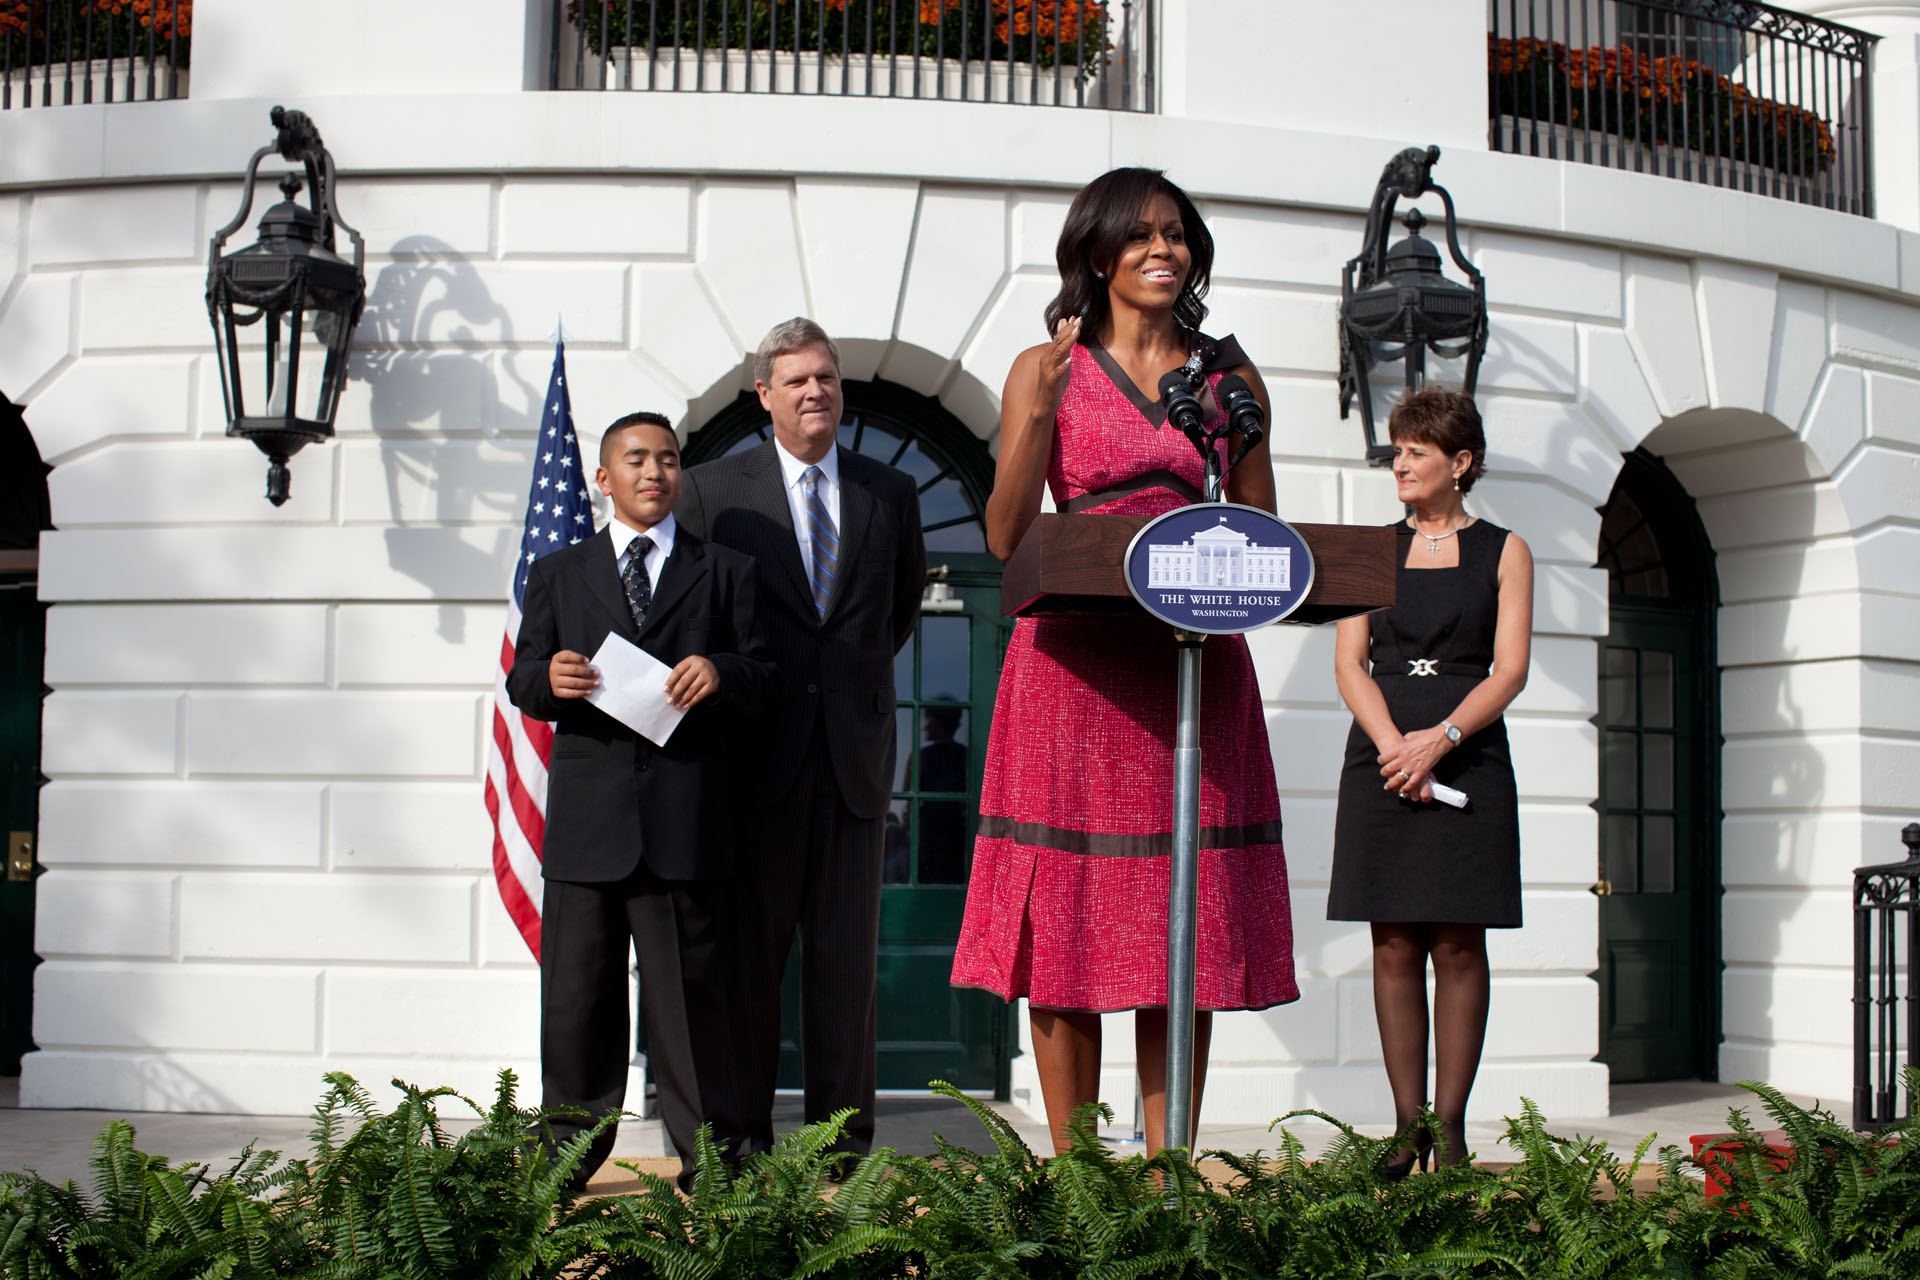 First Lady Michelle Obama Recognizes The Healthierus School Challenge Participants